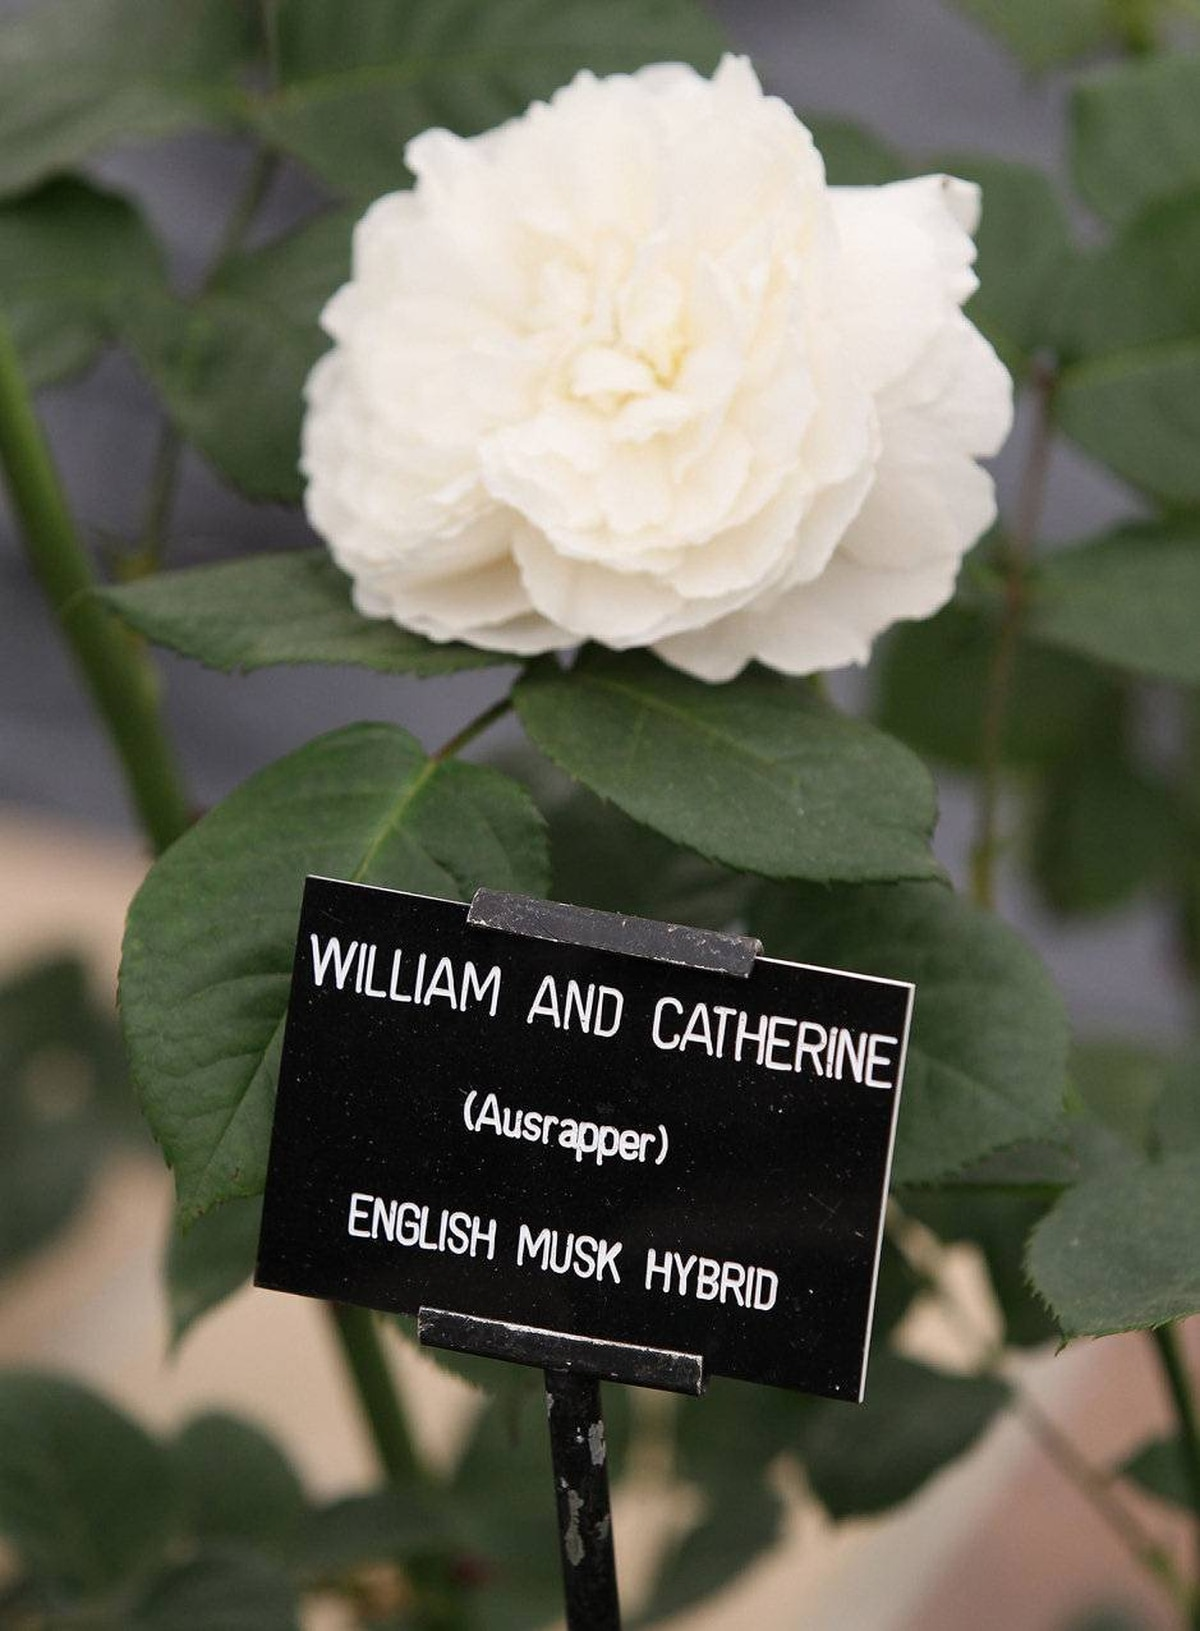 The royal newlyweds were there in spirit: A 'William and Catherine' Rose was shown at the David Austen stand during Chelsea Flower Show Press and VIP Day on May 23, 2011 in London, England.